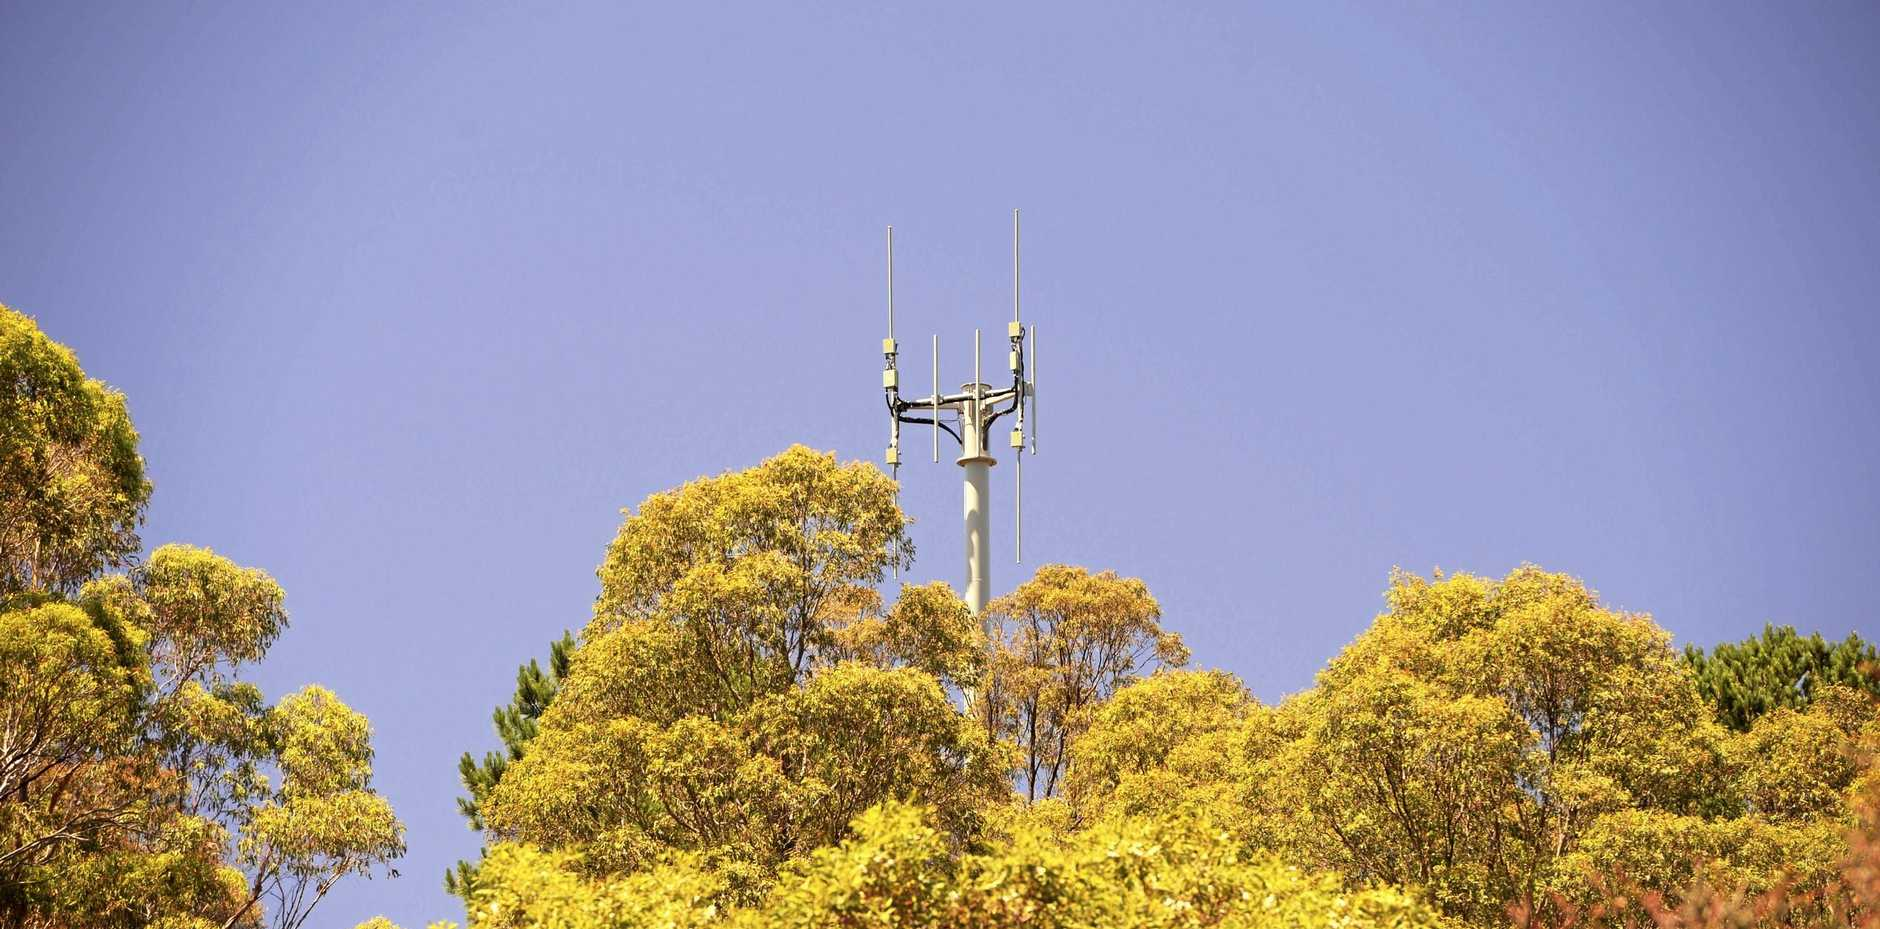 The ACCC has ruled against introducing domestic roaming to allow phone rivals to access each other's networks.